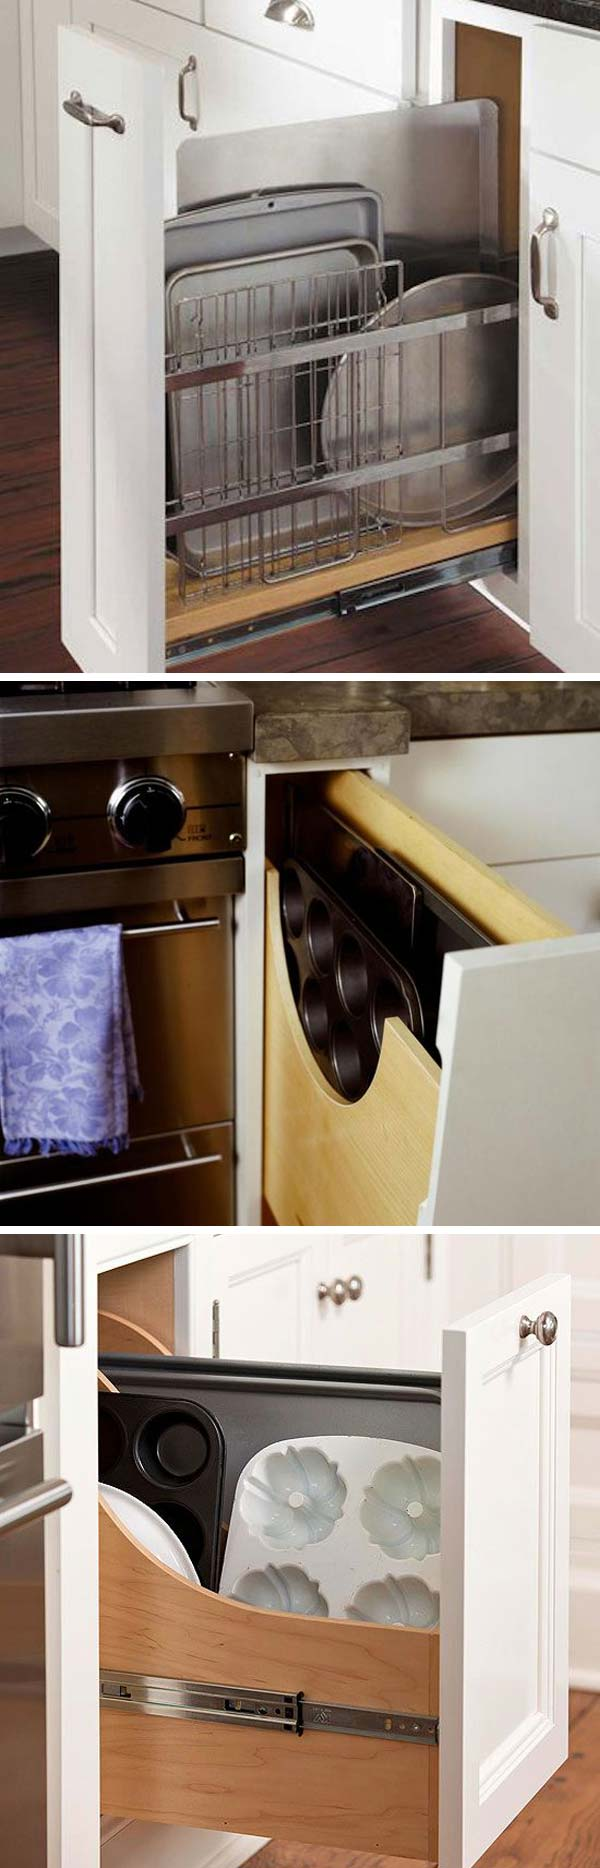 Kitchen Cupboard Organization Hacks